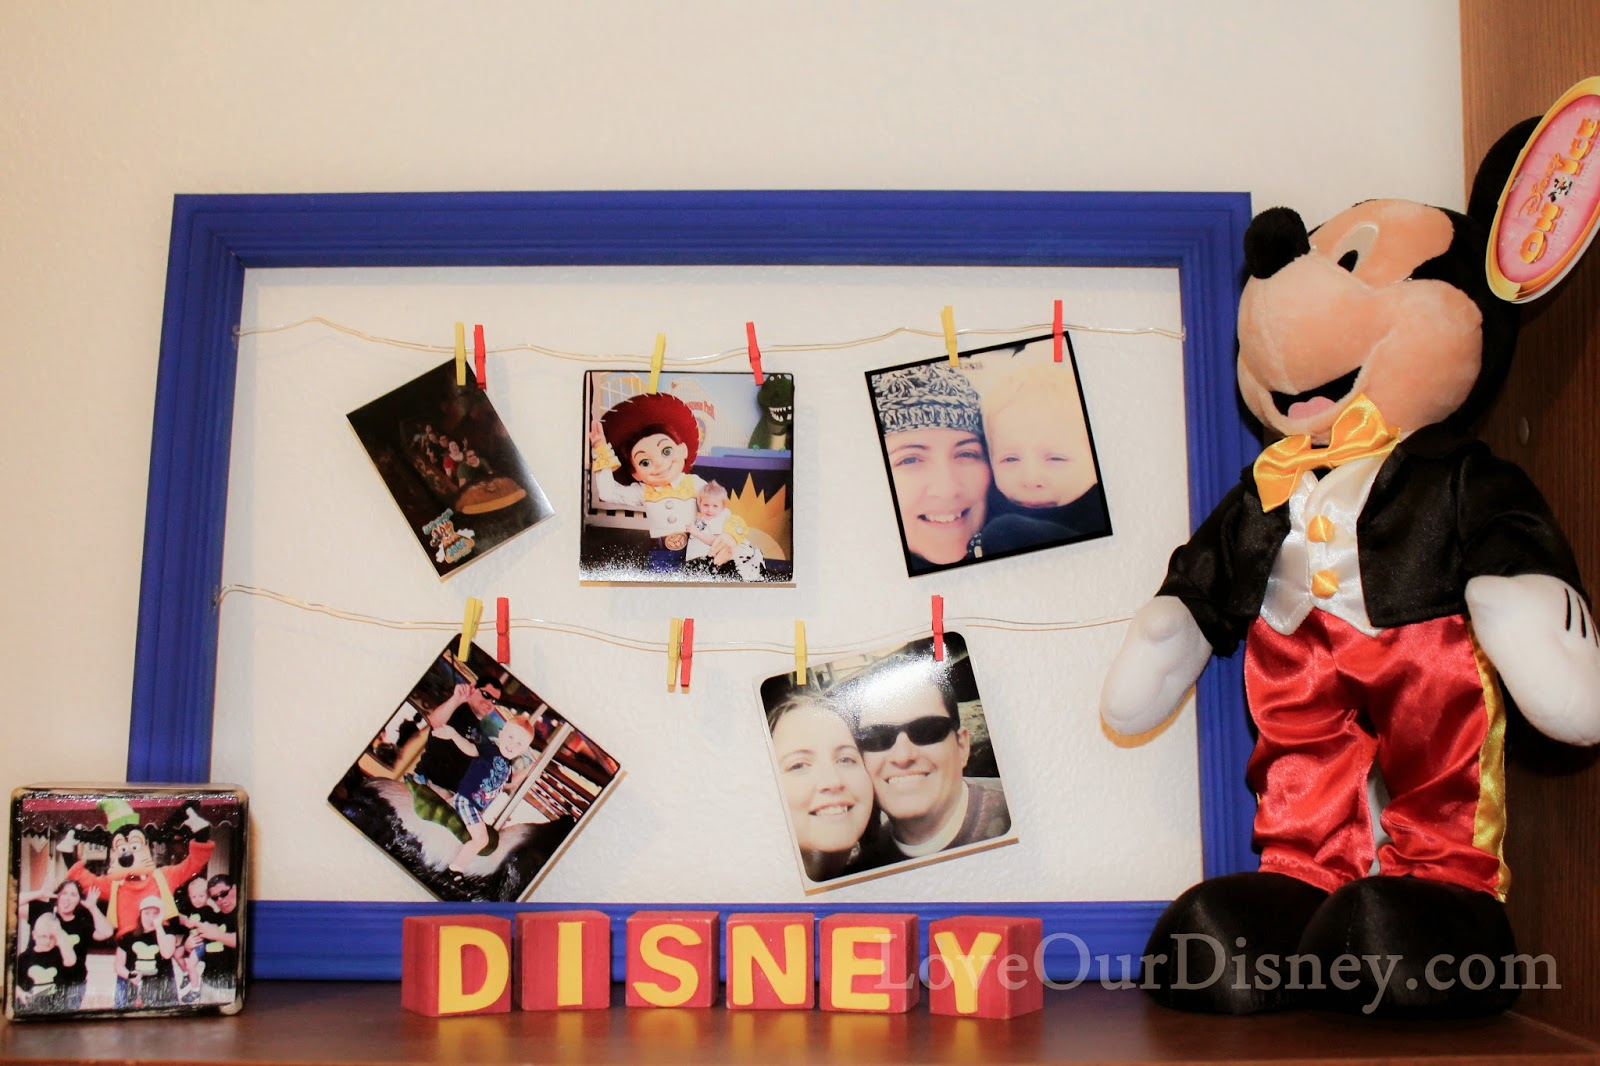 DIY Clothes Line Photo Display from LoveOurDisney.com